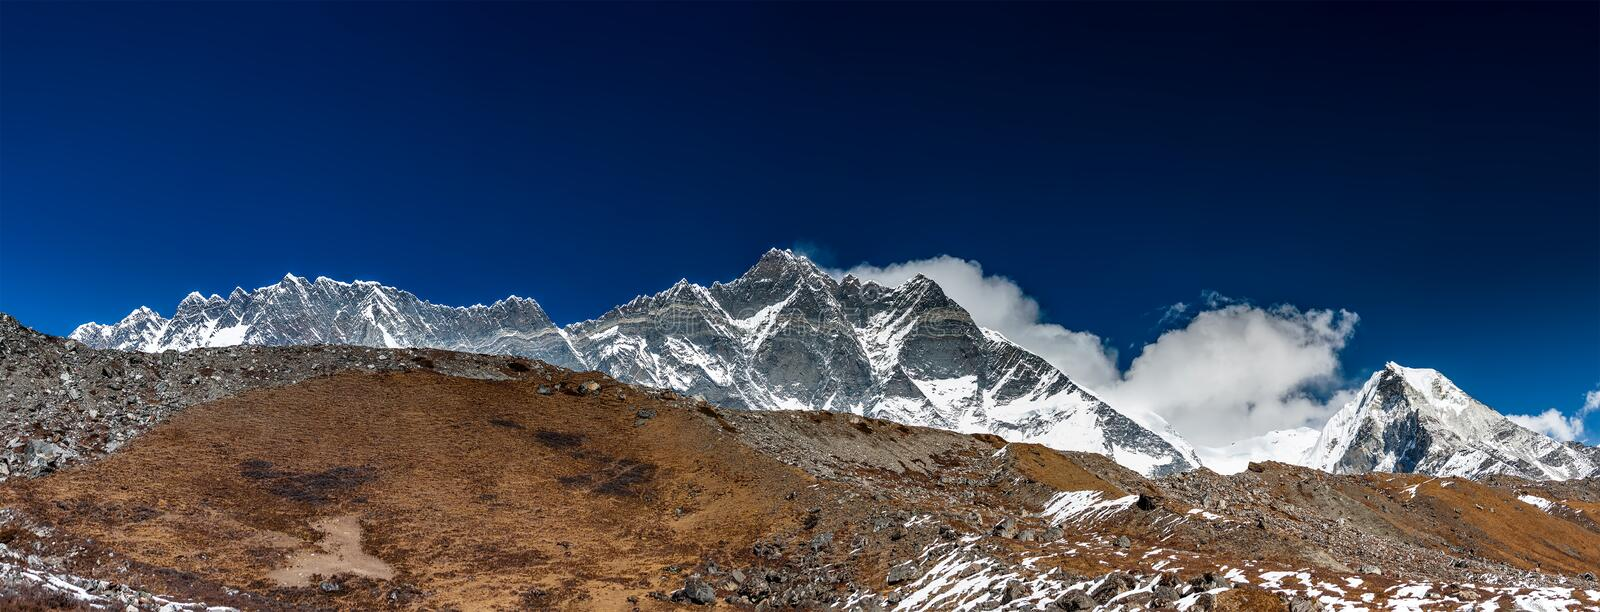 Panorama of the Khumbu valley in Nepal with Lhotse mount royalty free stock photo